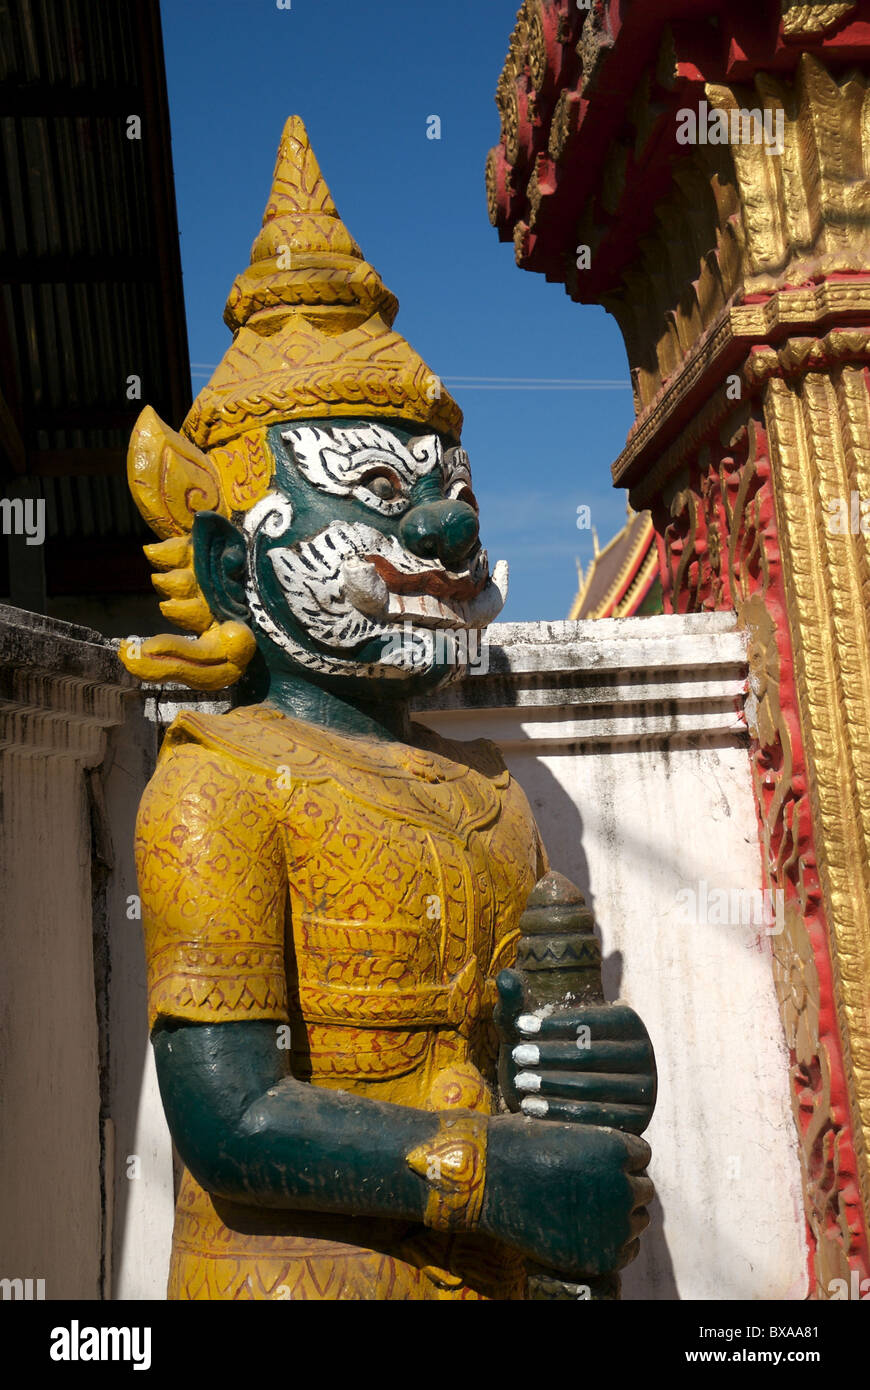 At every Buddhist temple there are temples to guard devaluation of